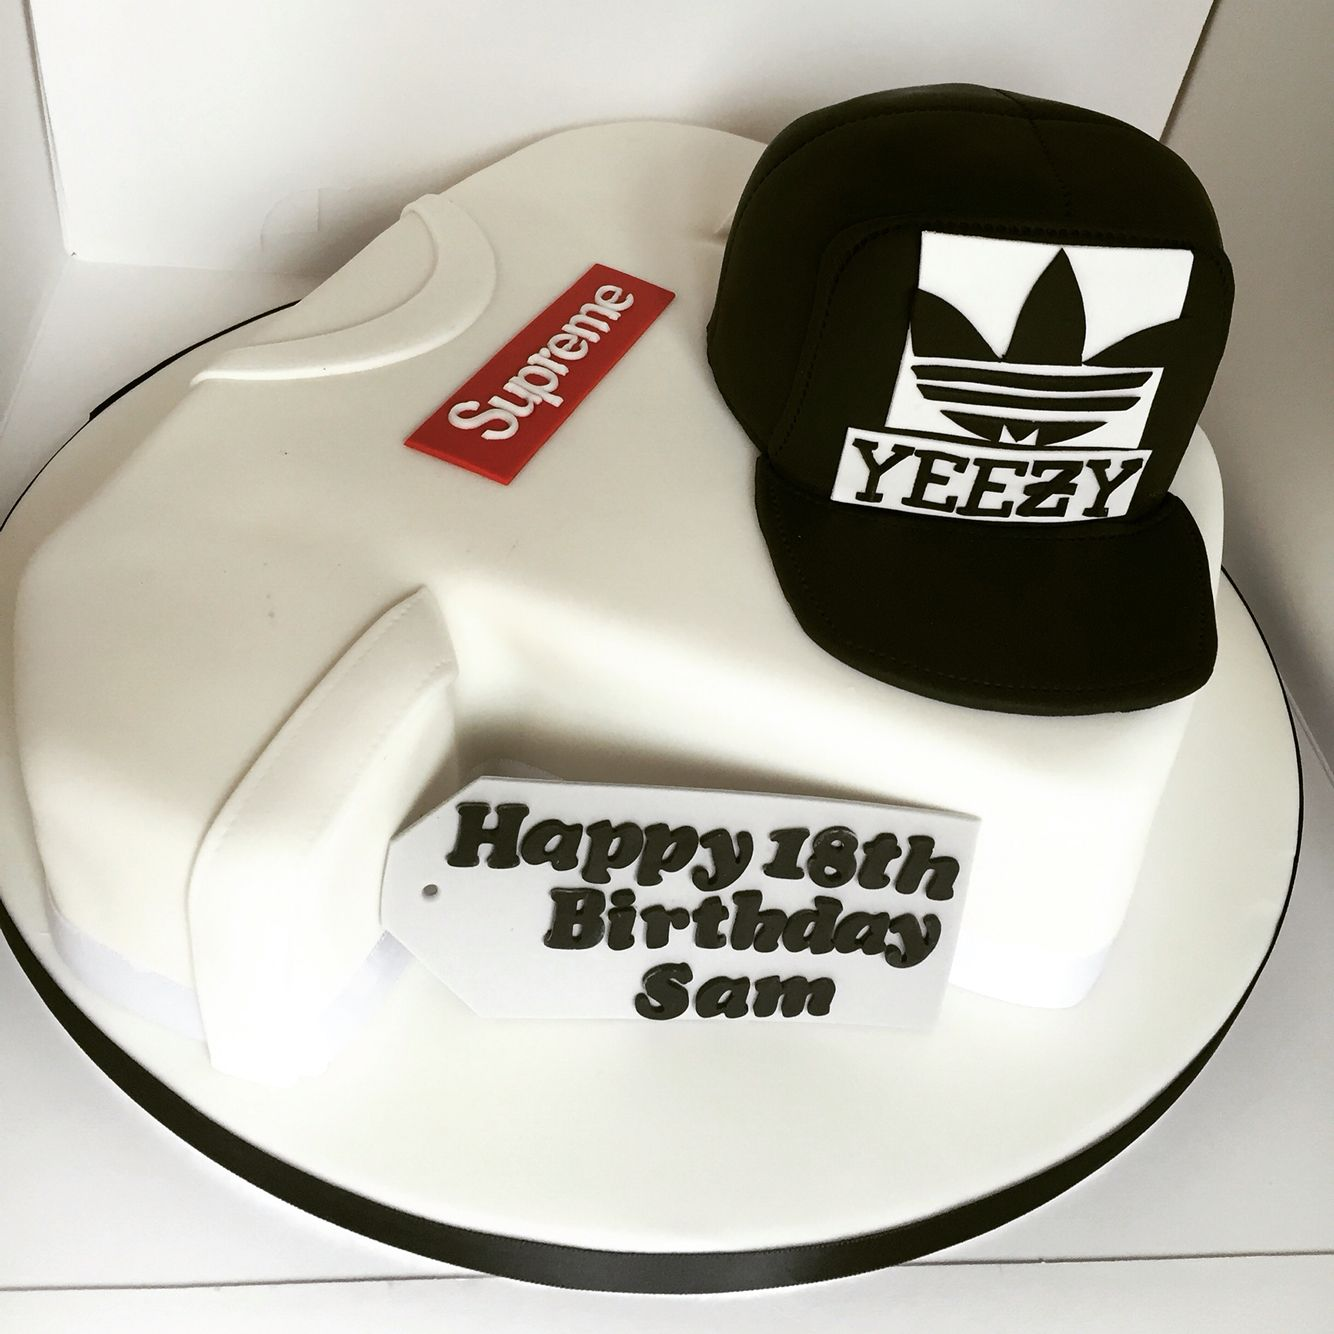 Supreme Tshirt And Yeezy Cap 18th Birthday Cake